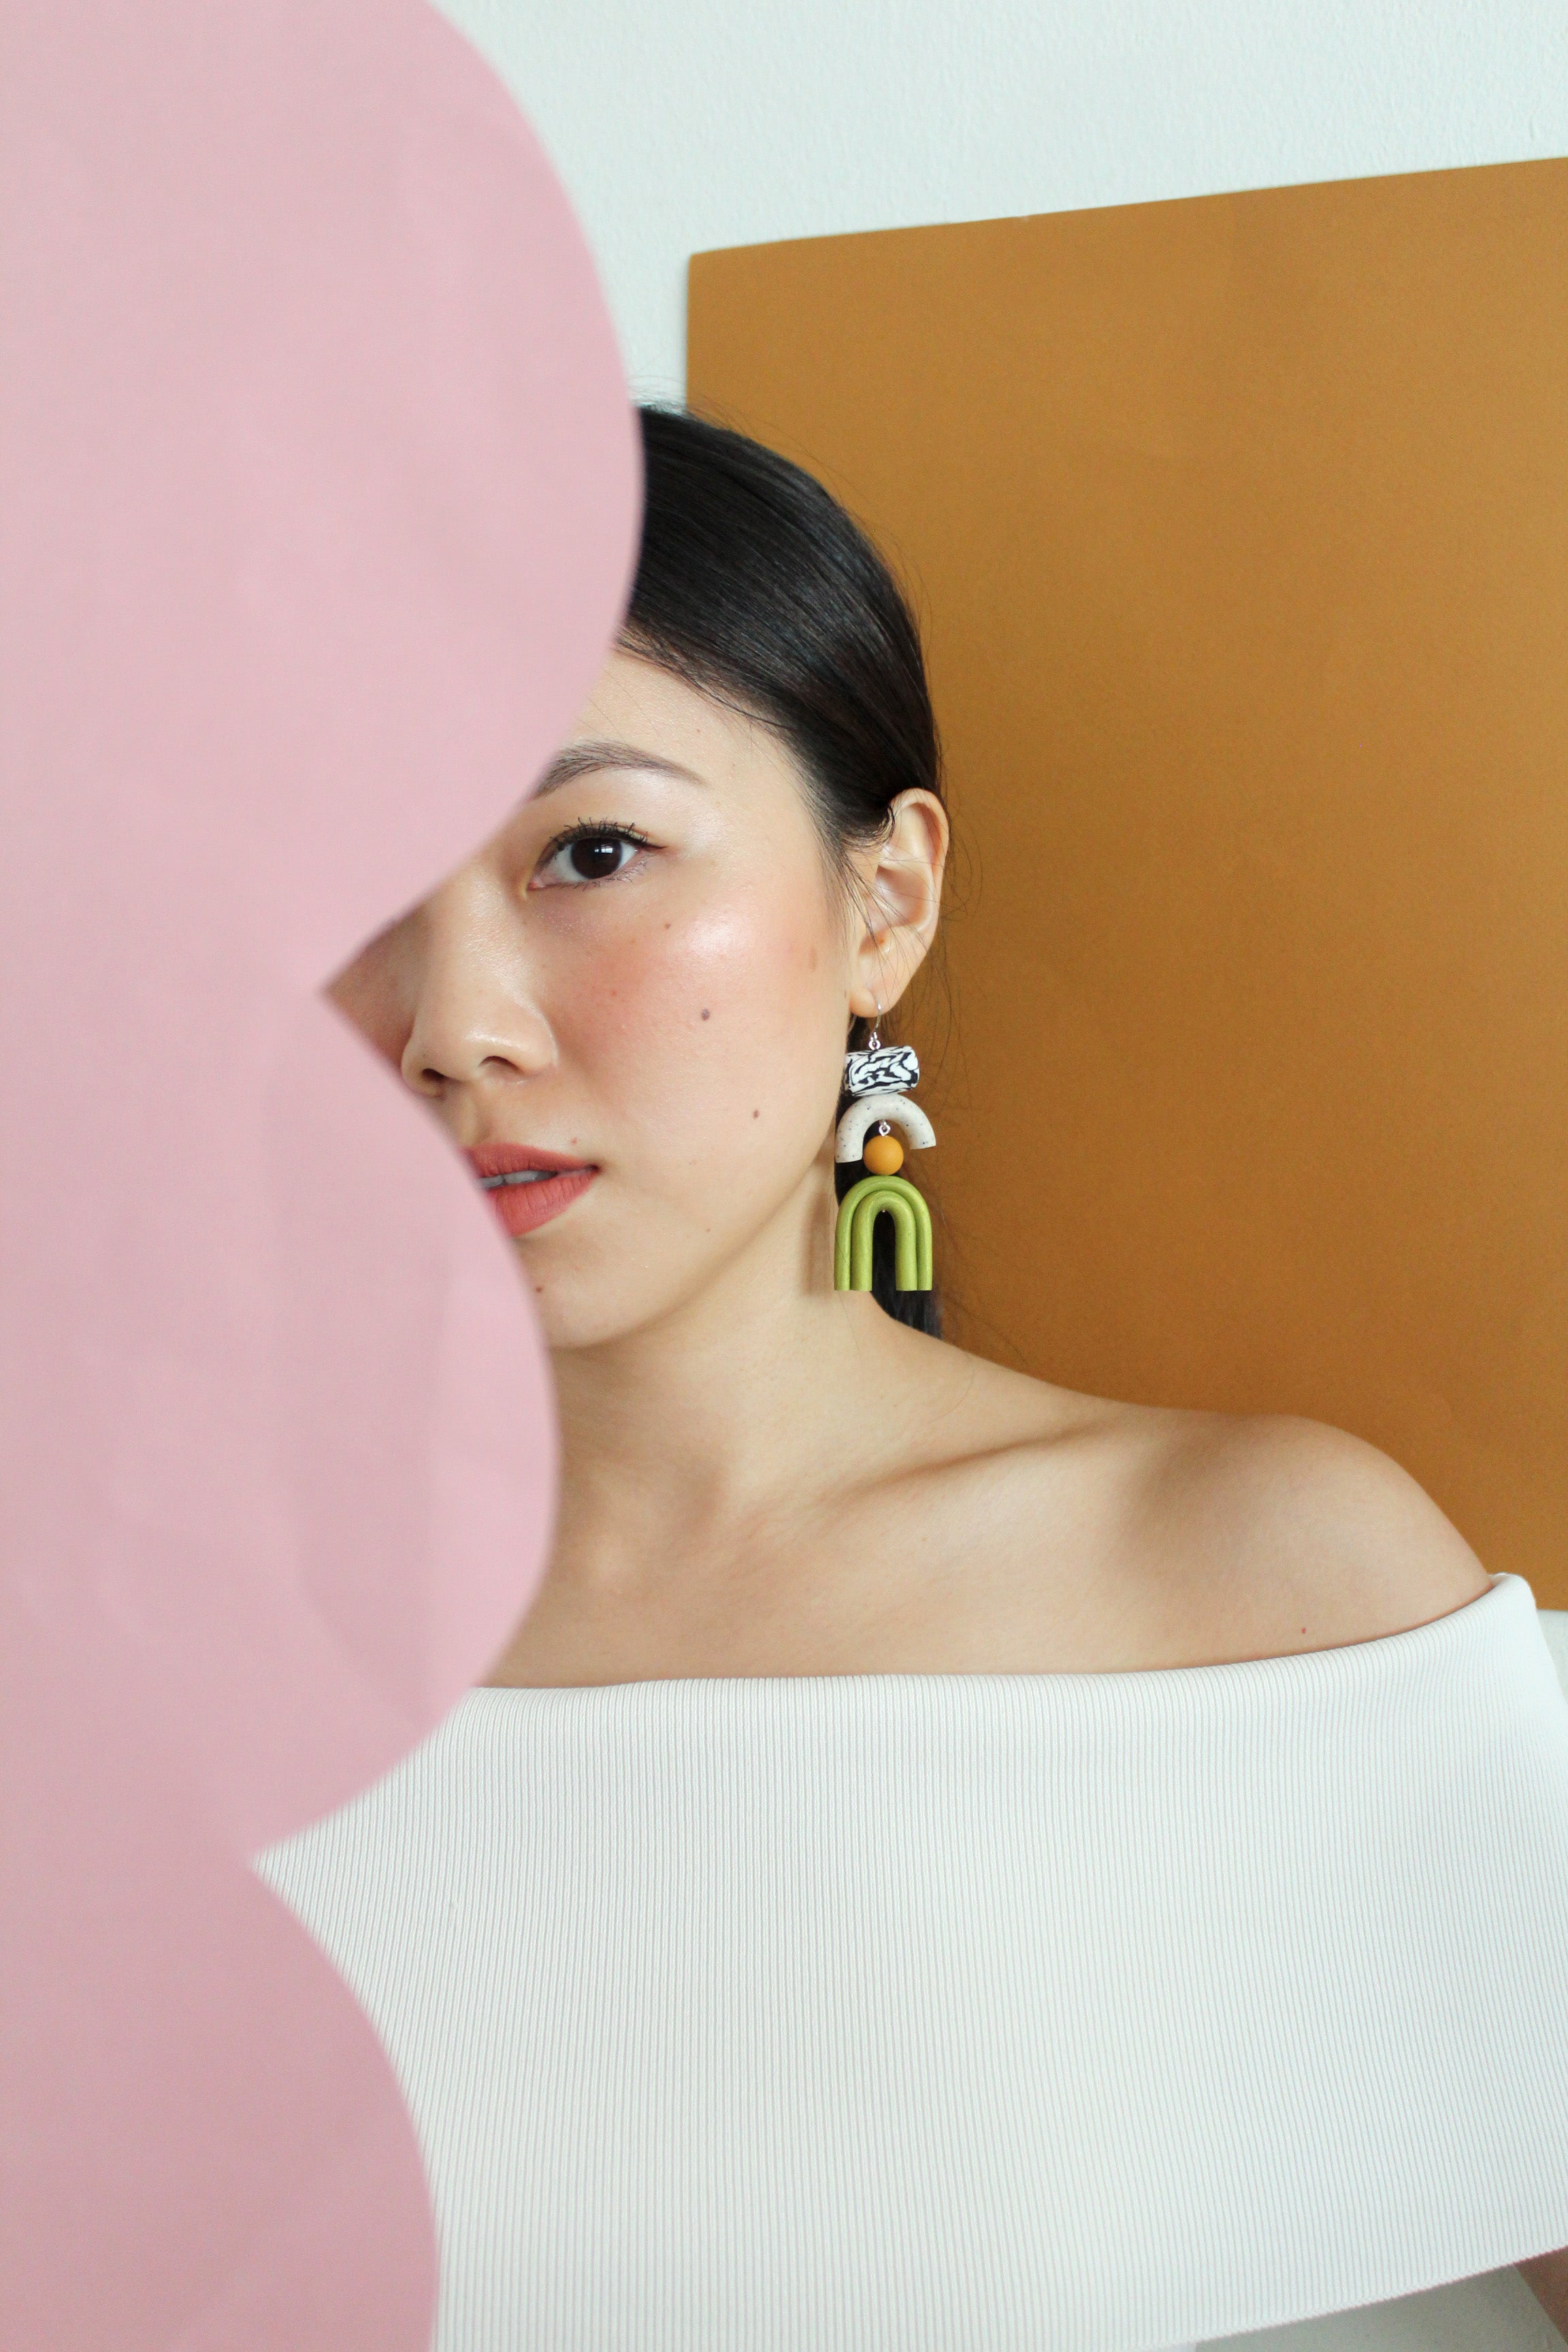 Tsunja polymer clay earrings on model, Bowie earrings in green with silver hook